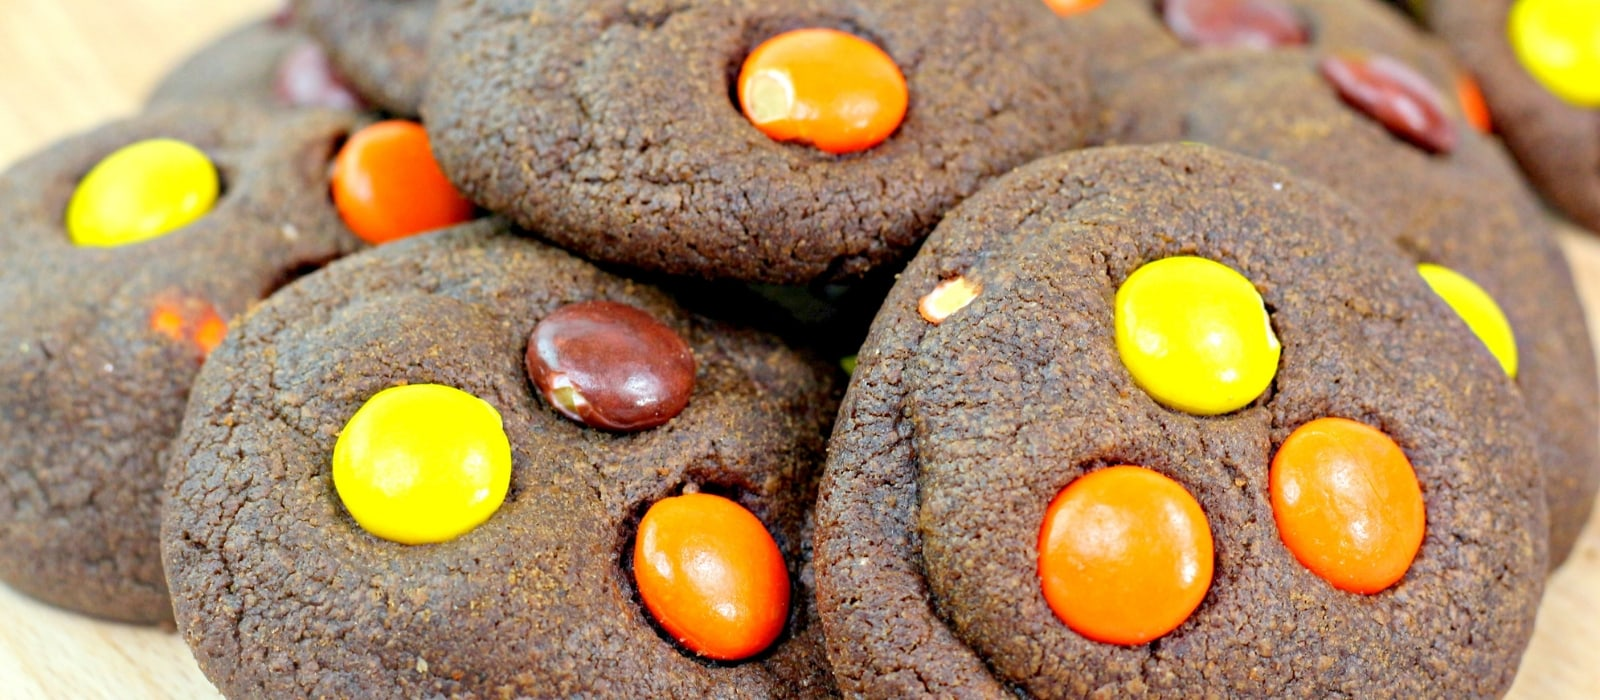 Scrumptious Kahlua Cookies| Adult Only Cookies| Cookies for Adults| Cookies You Don't Have to Share with the Kids| Kahlua Cookies| Boozy Cookies| #cookies #boozycookies #notforkids #kahlua